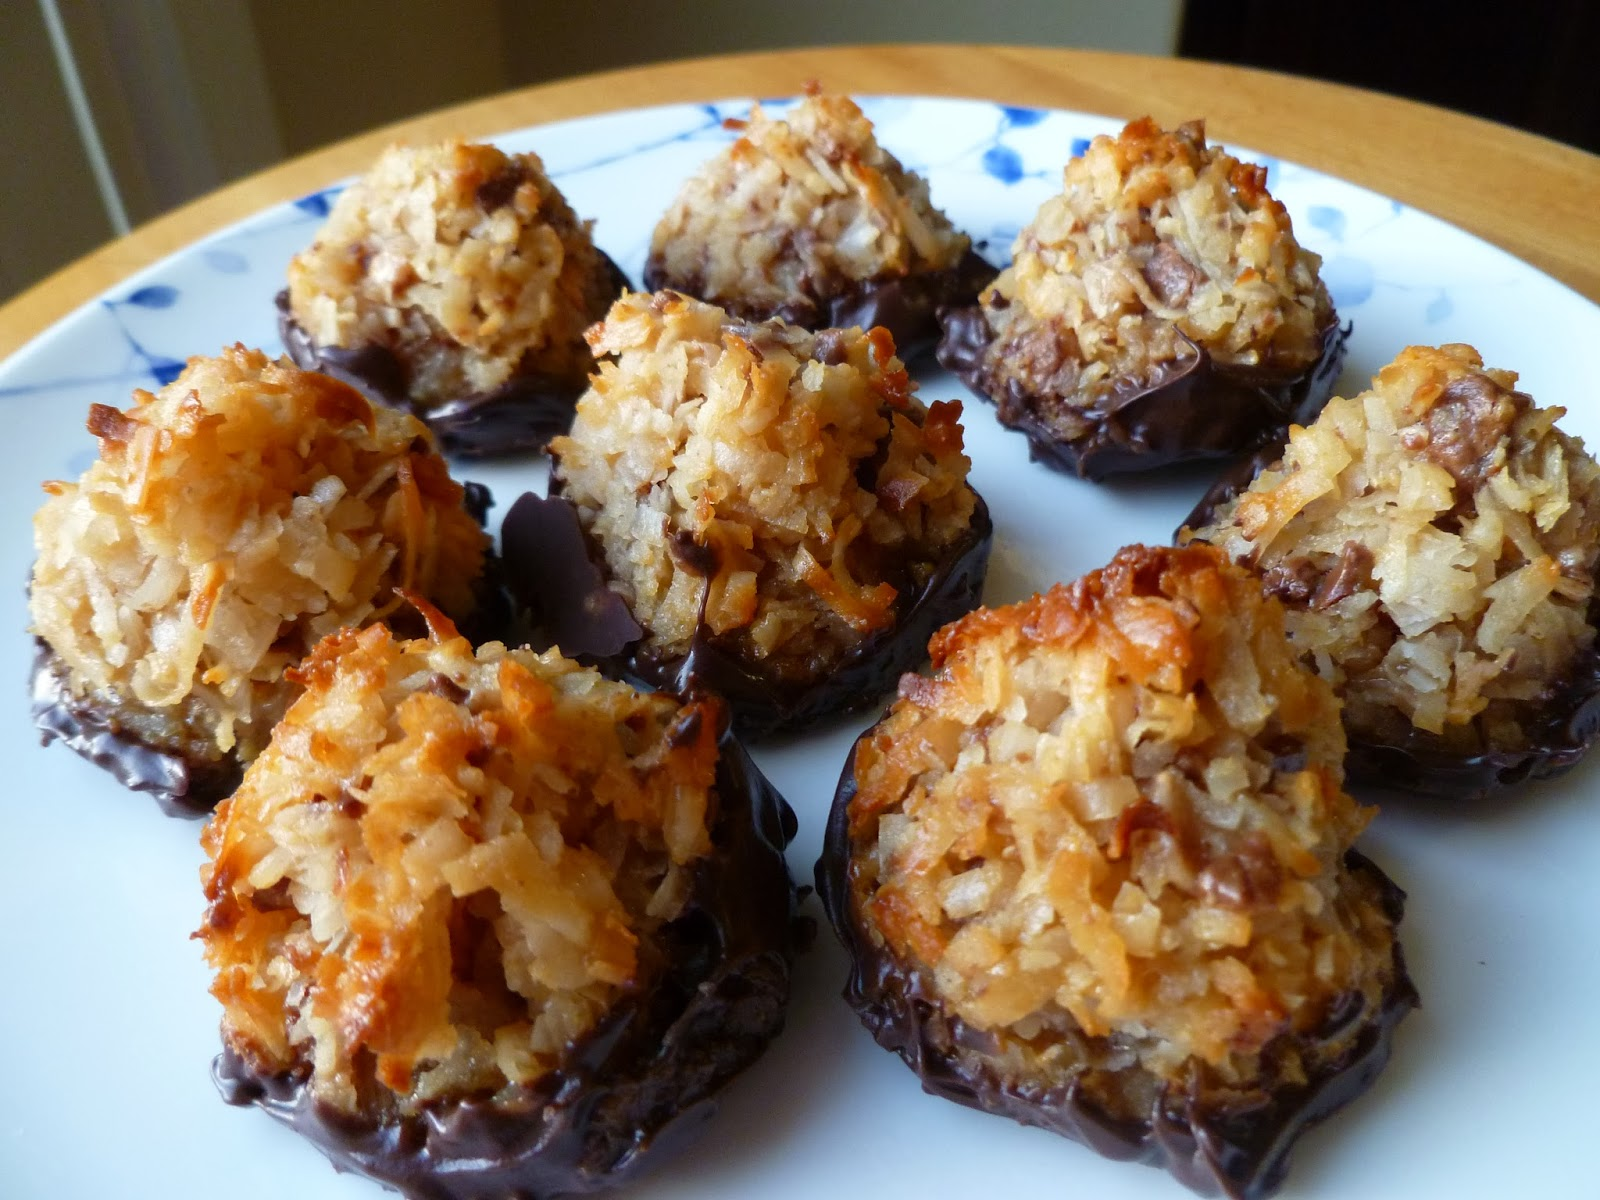 The Pastry Chef's Baking: Salted Caramel Toffee Coconut Macaroons